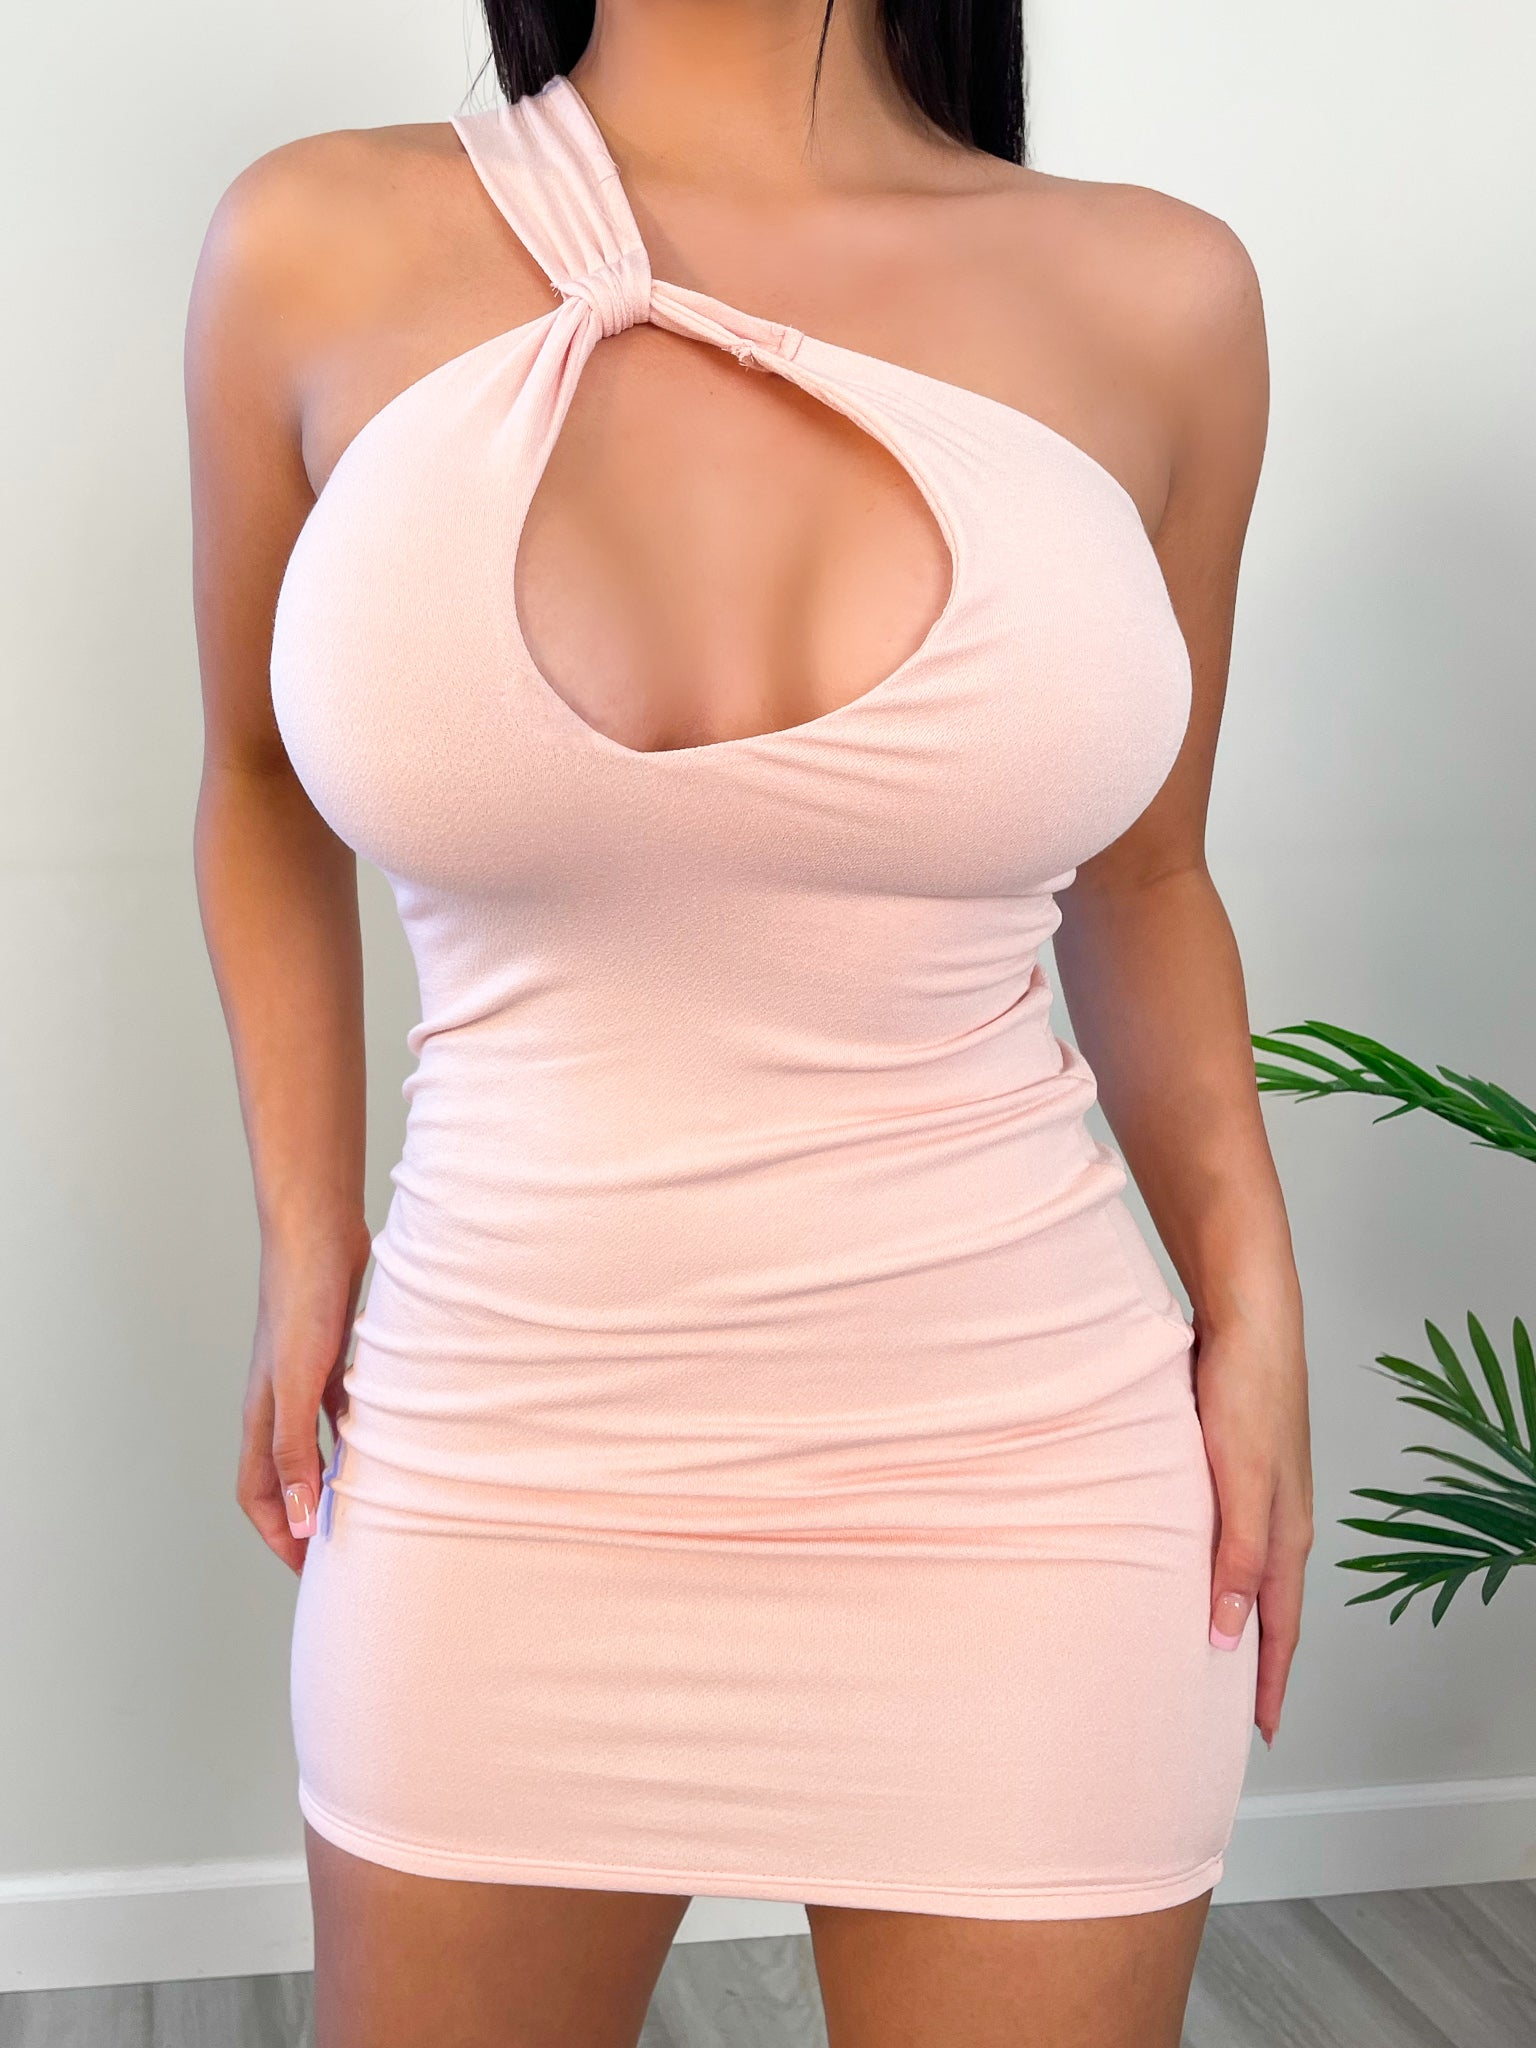 blush mini dress, middle opening, one shoulder, backless